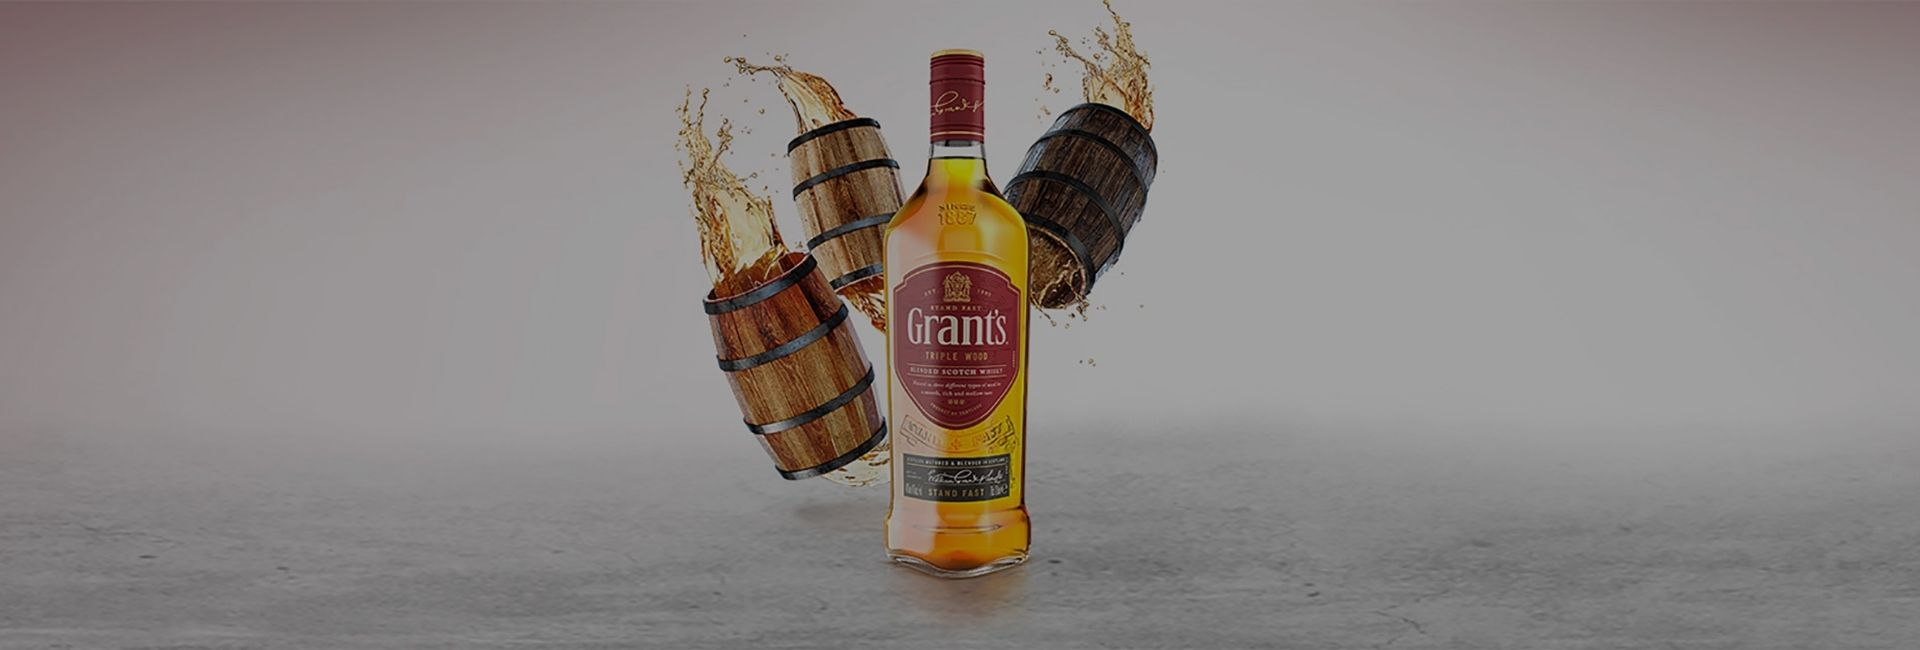 Grant's Triple Wood Blended Scotch Whisky Review